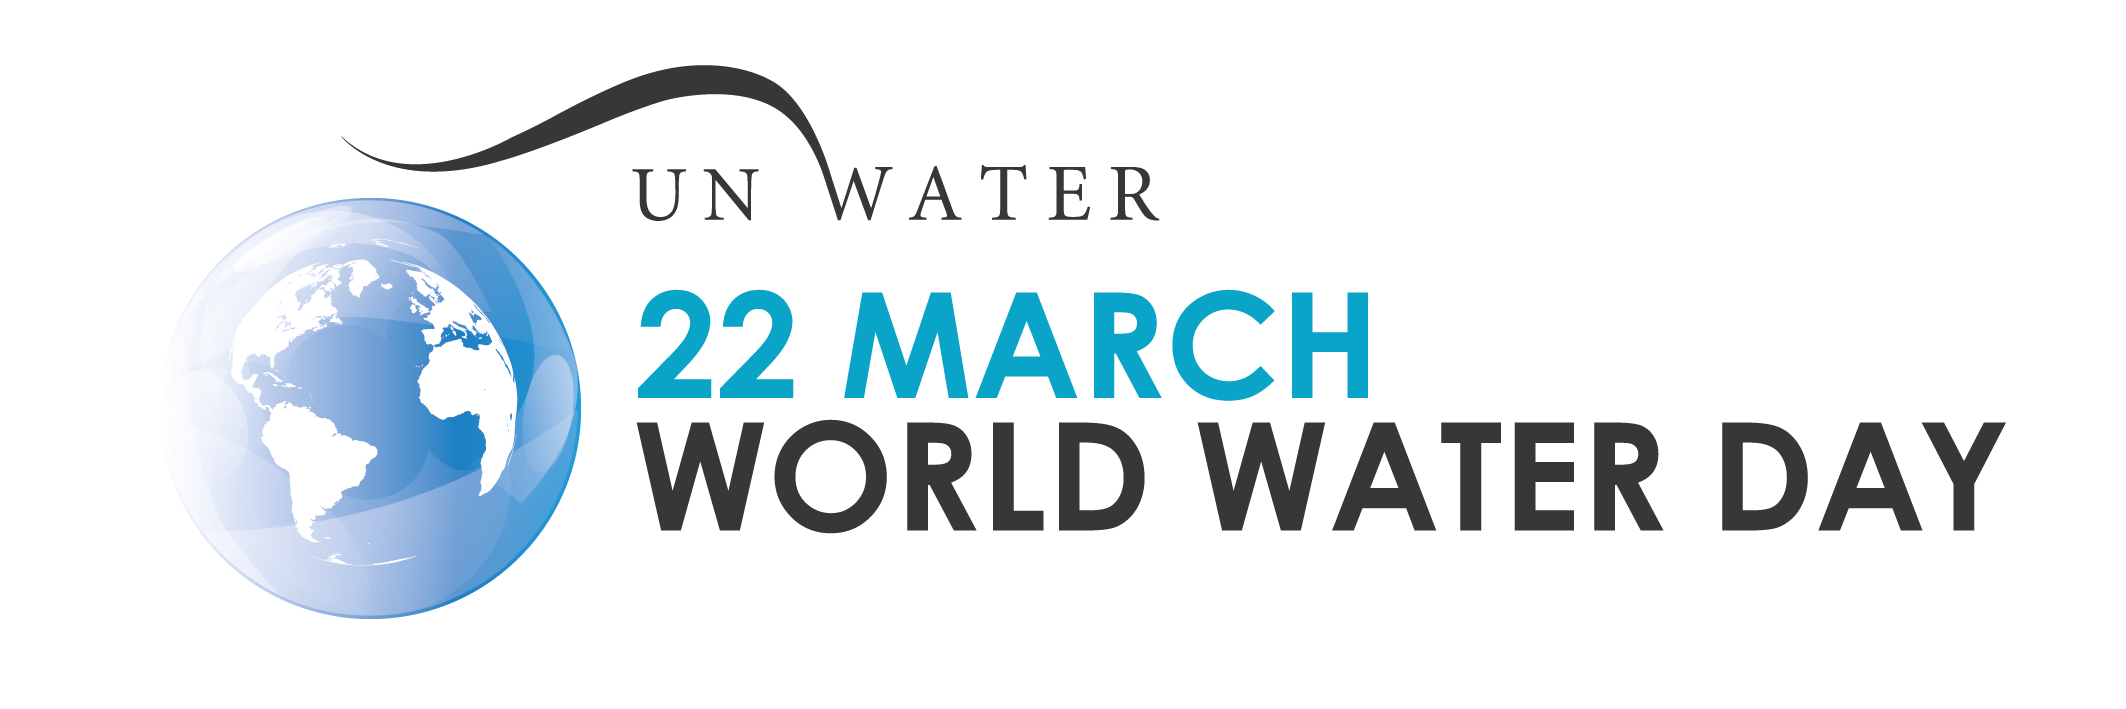 UN World Water Day March 22 with image of the world